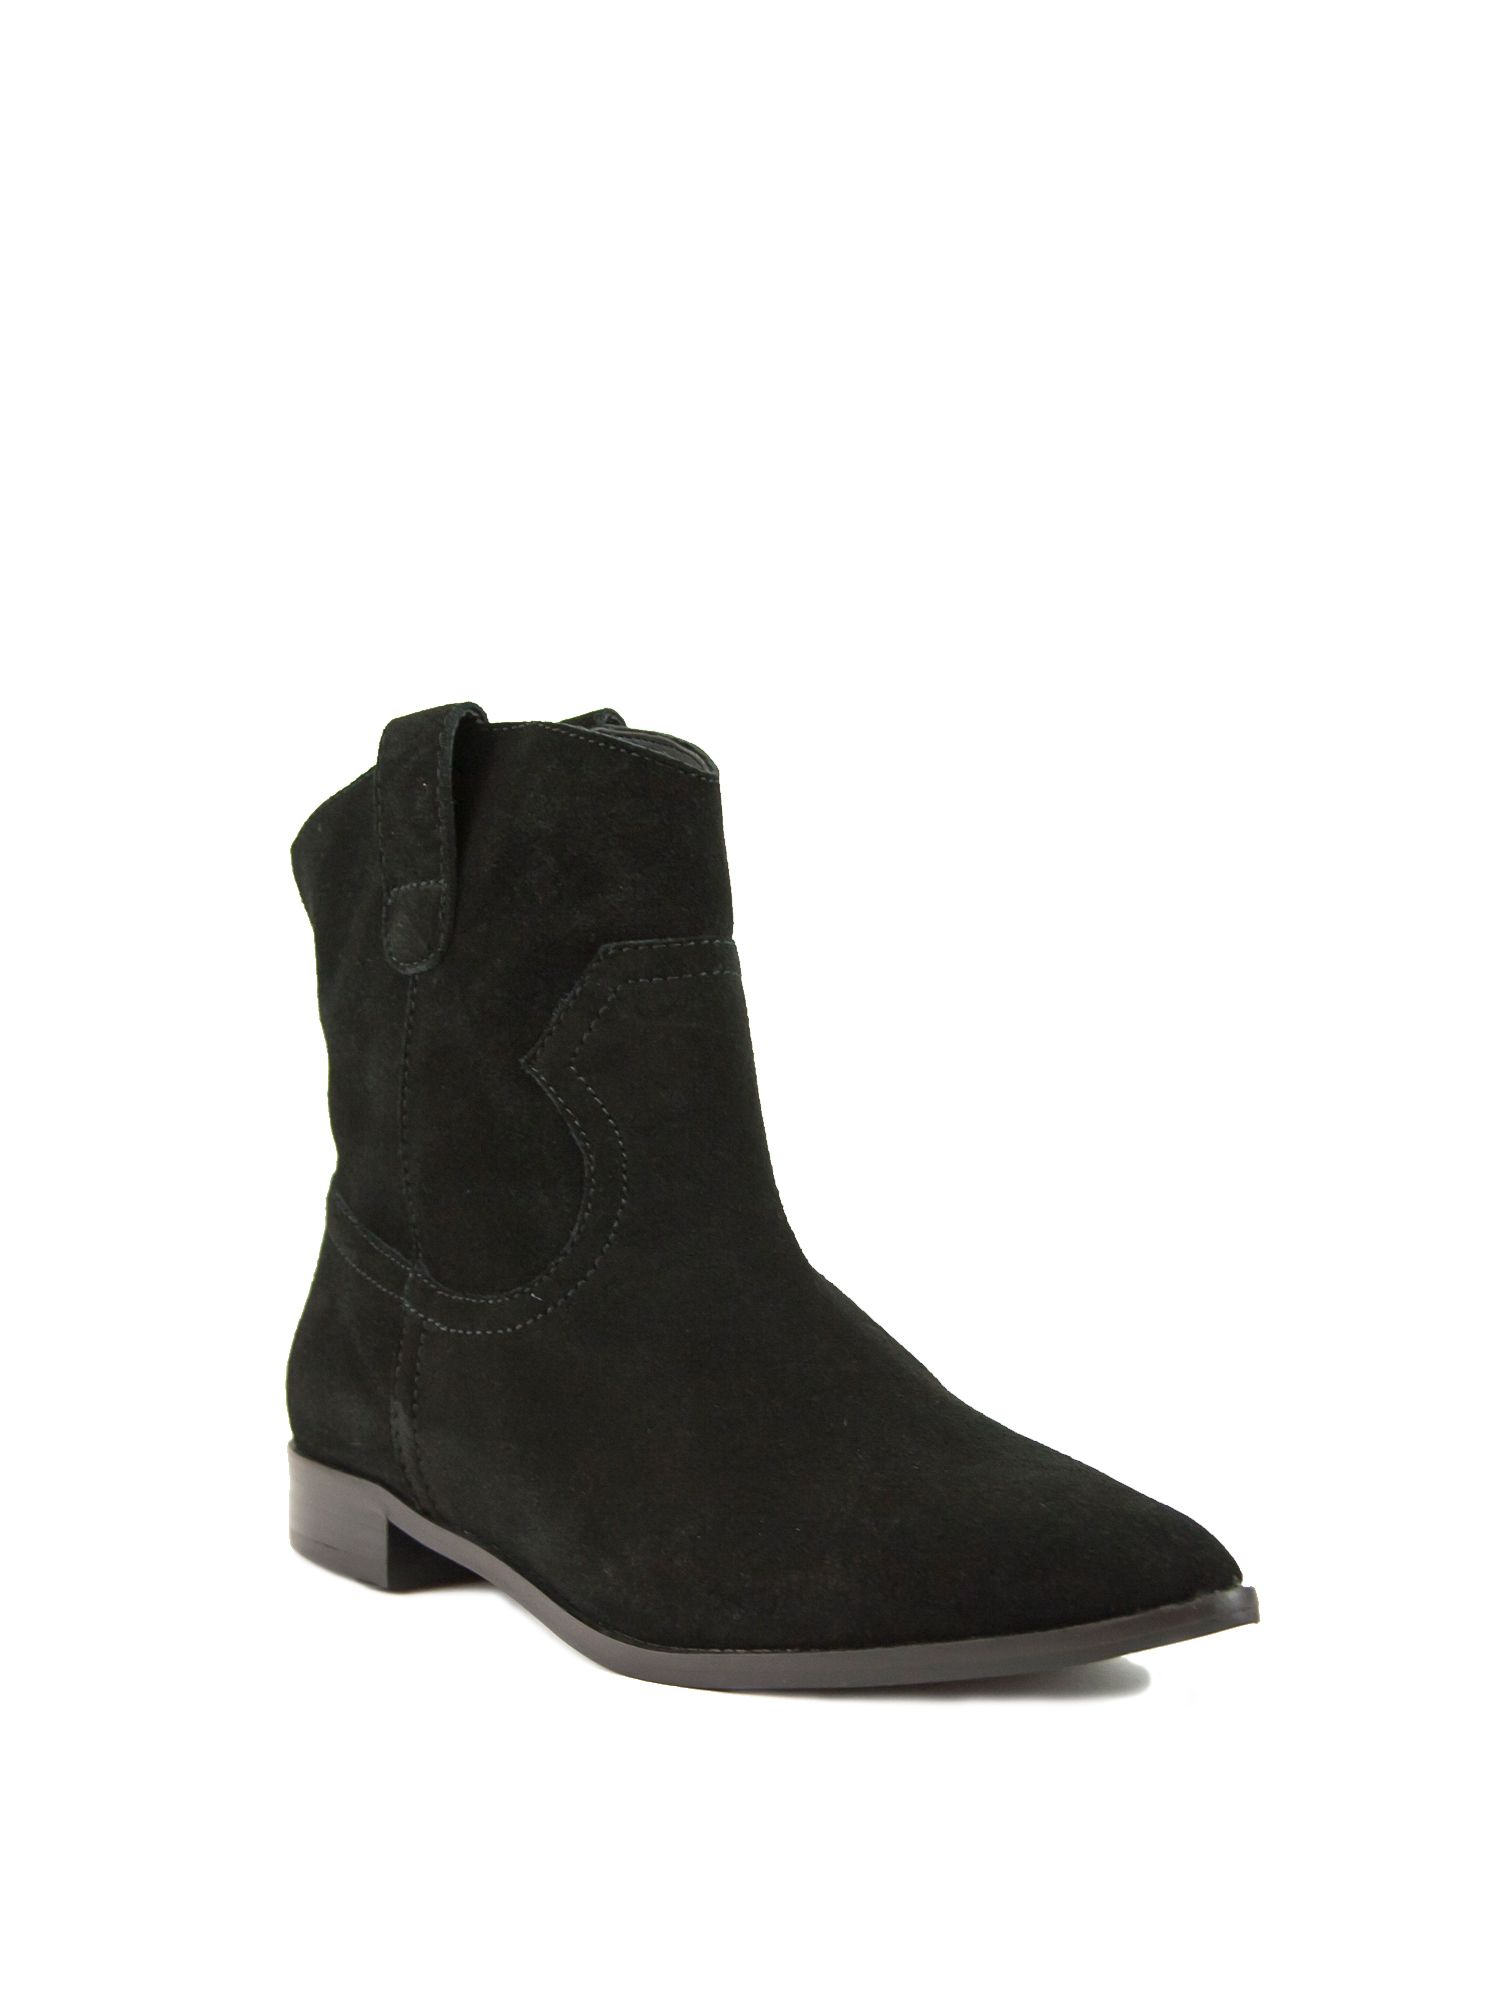 Shellys London Shellys London Bowroad casual western ankle boots, Black